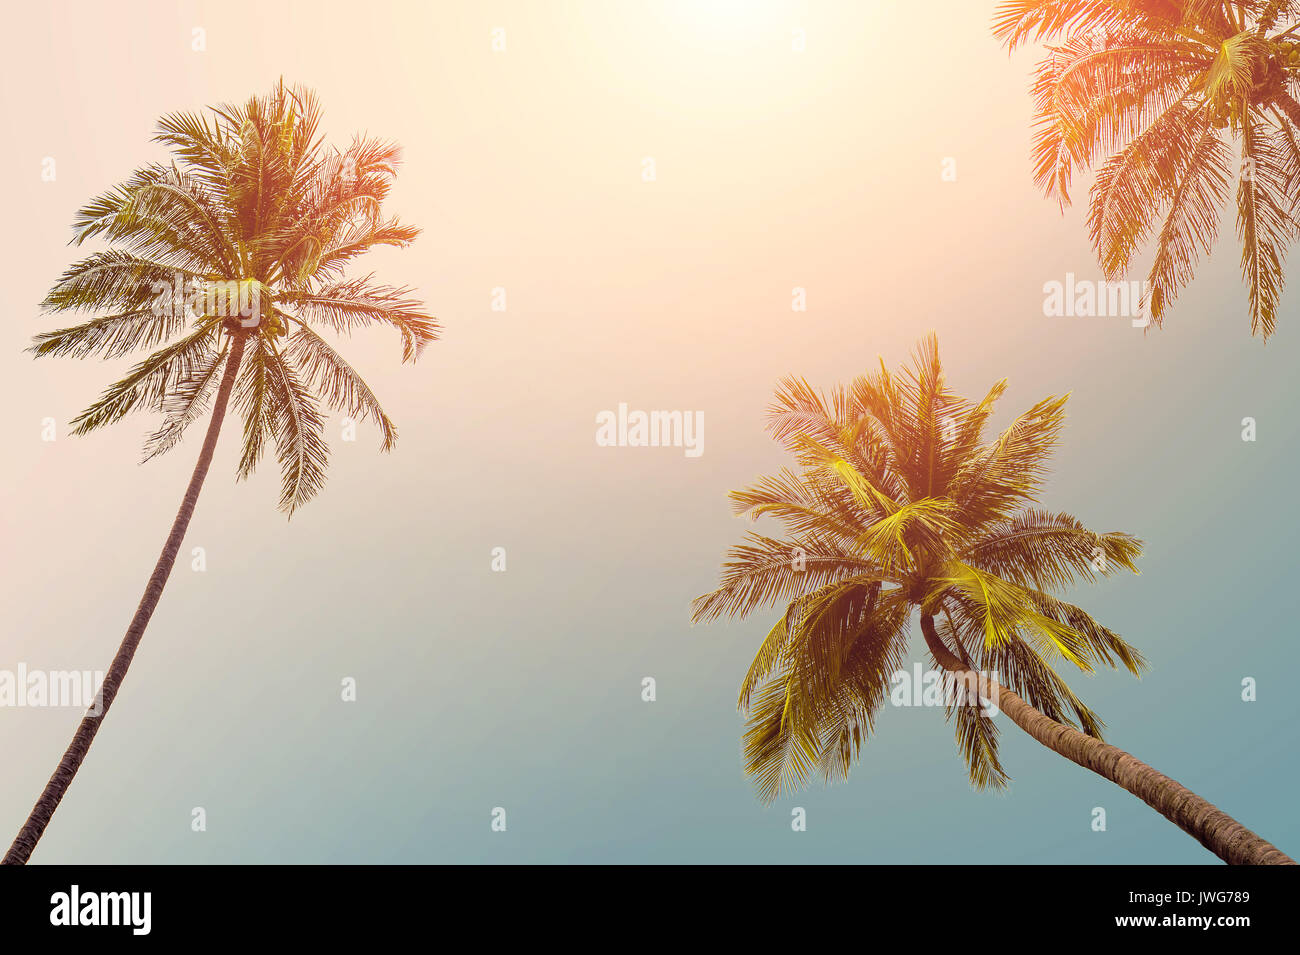 Coconut tree at tropical coast, Vintage Tones,Warm tones - Stock Image